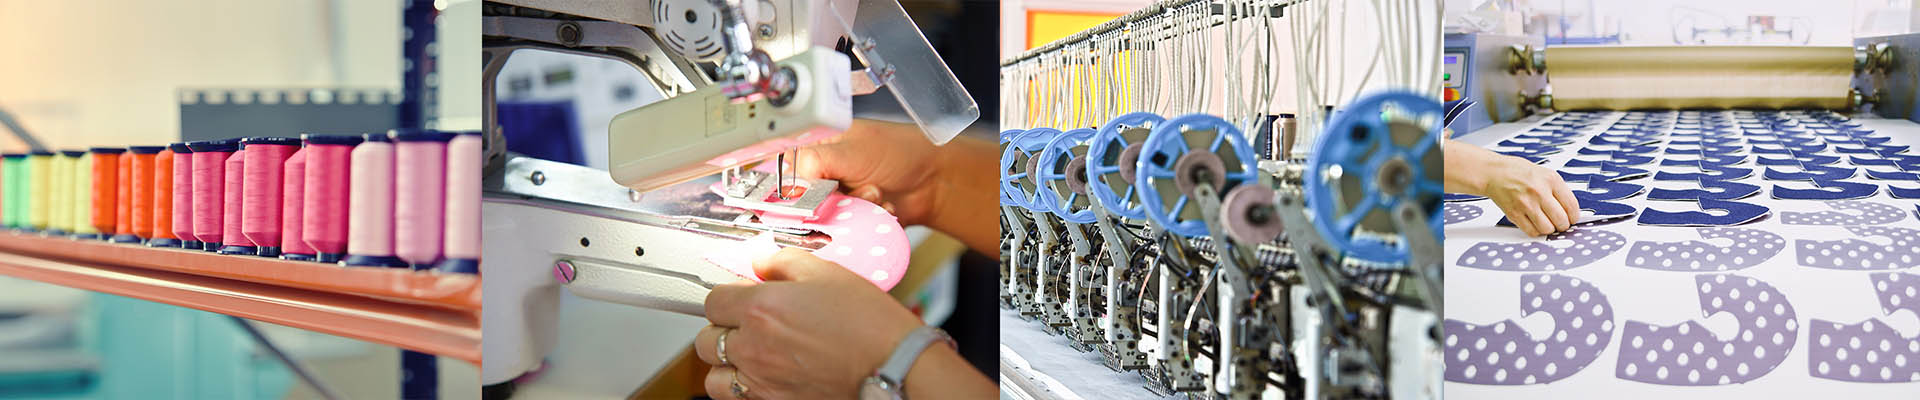 Manufacture of footwear for children and adolescents